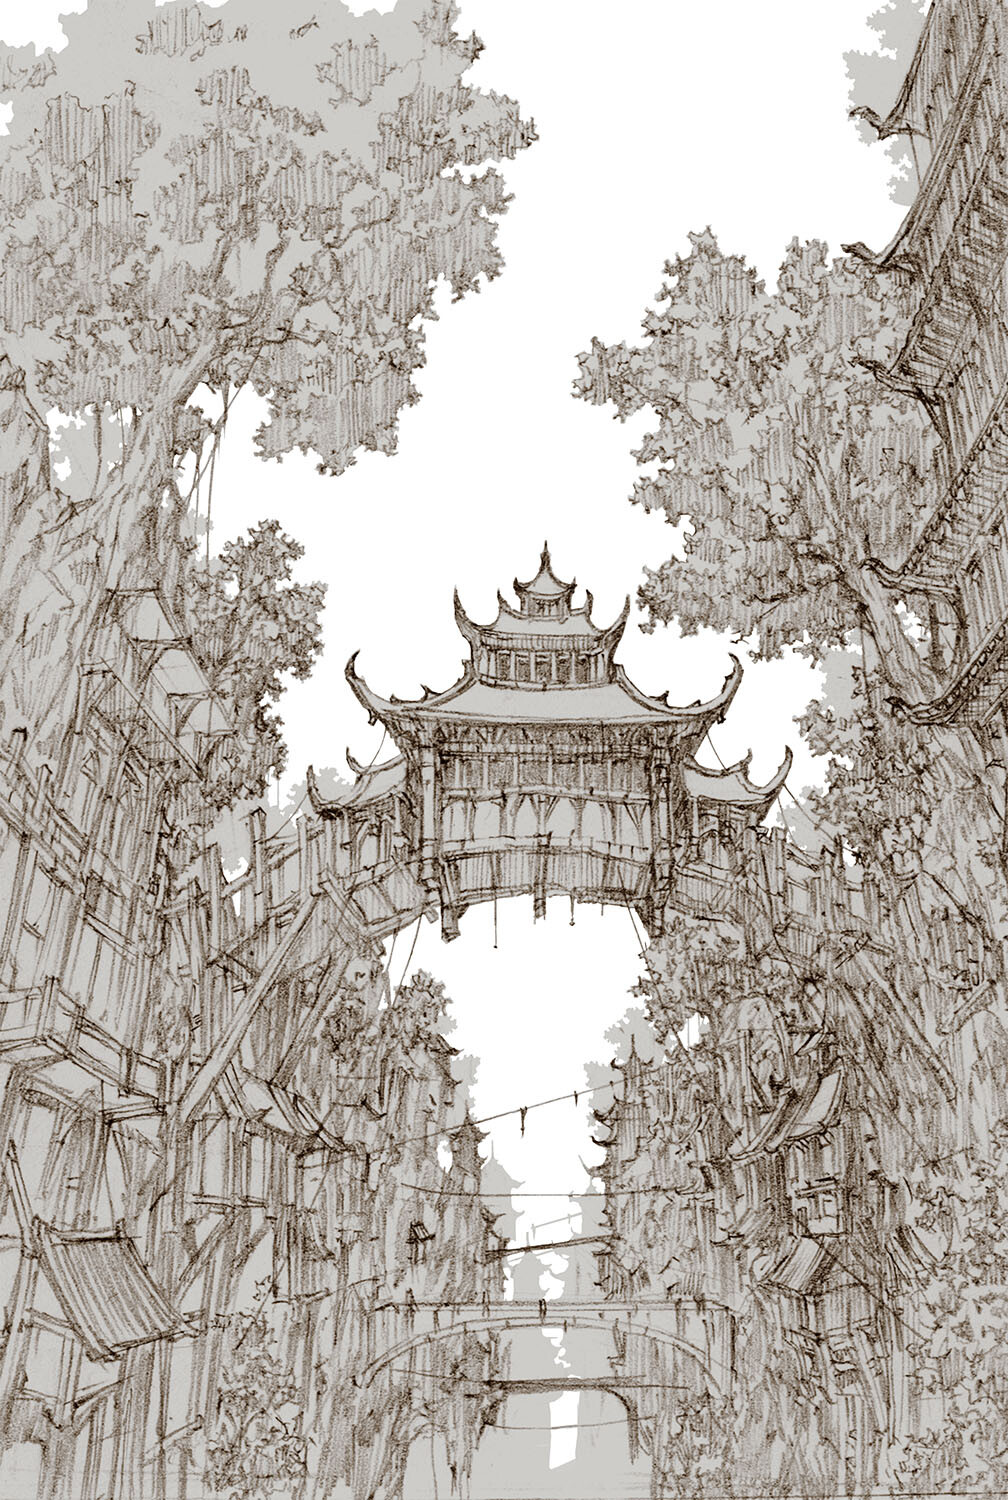 Min seub jung chinese cities 4